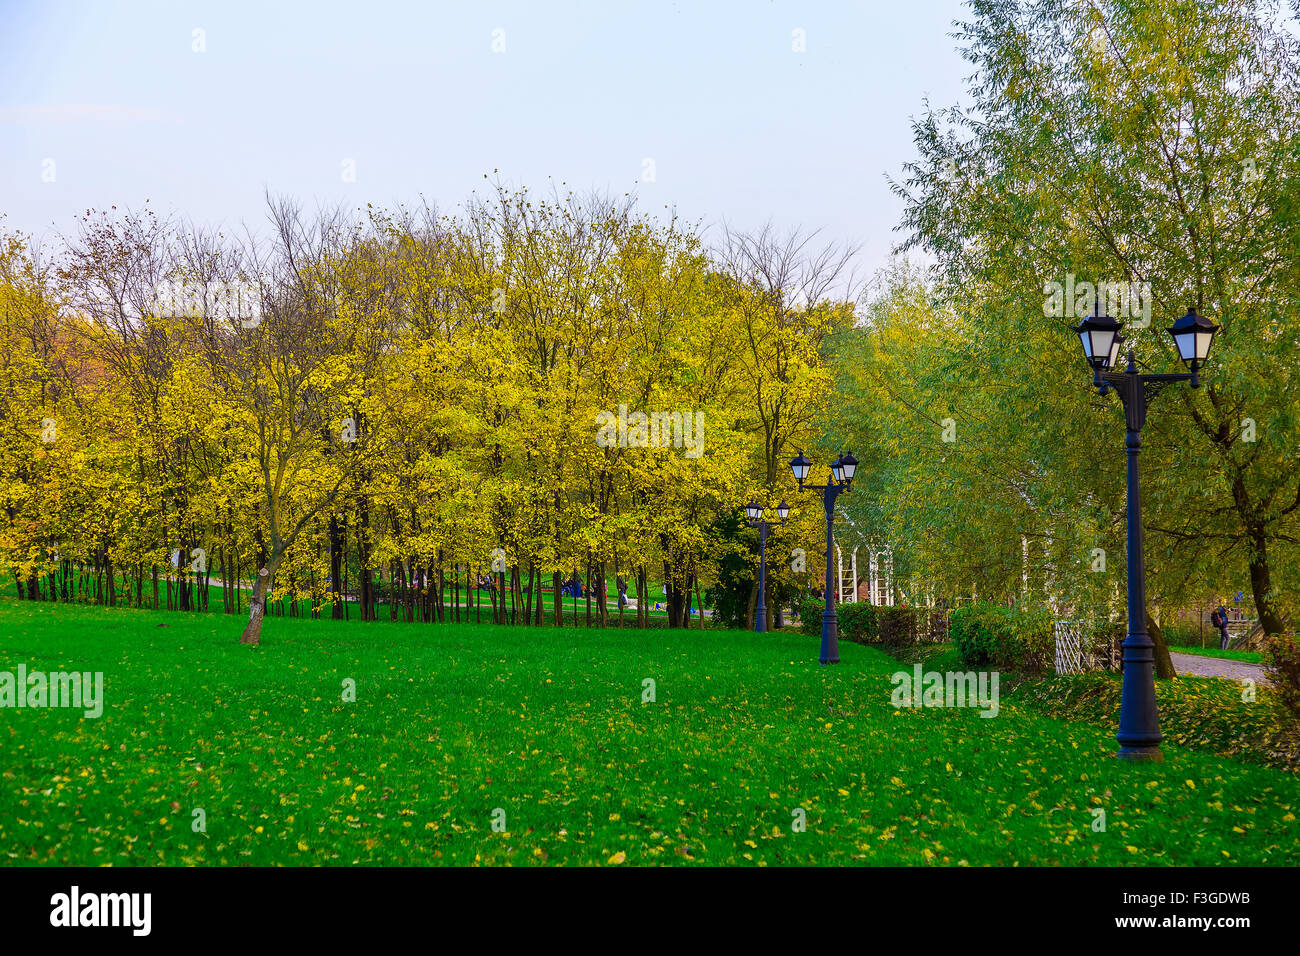 A Green Lawn with Colorful Trees Around the Perimeter of the Lawn on ...